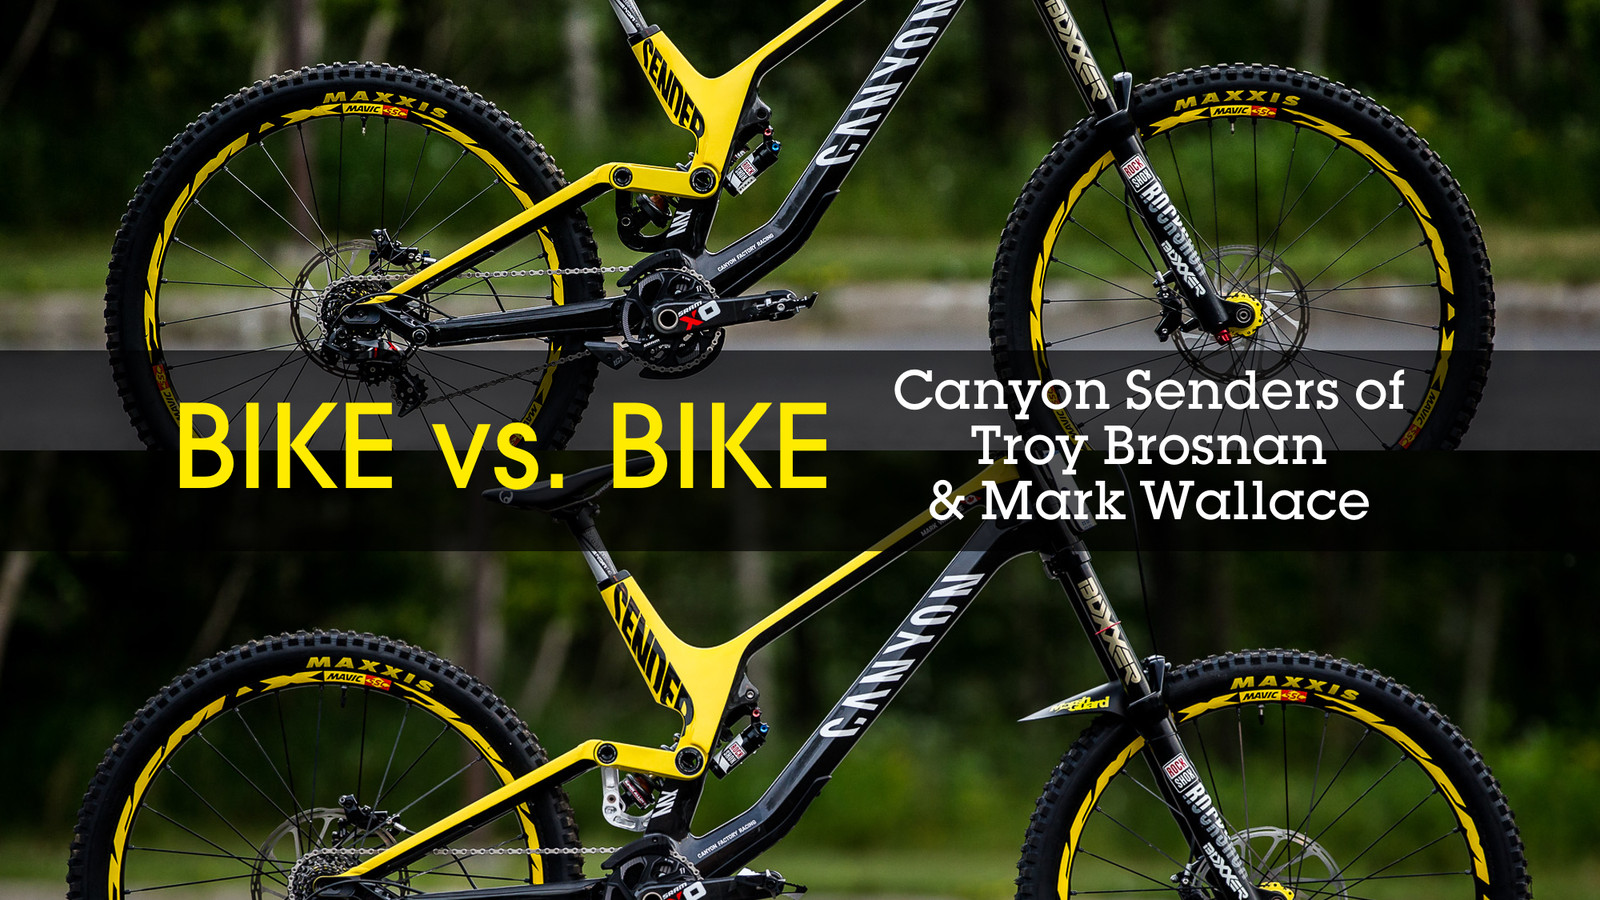 Bike vs. Bike - Troy Brosnan and Mark Wallace's Canyon Sender DH Bikes